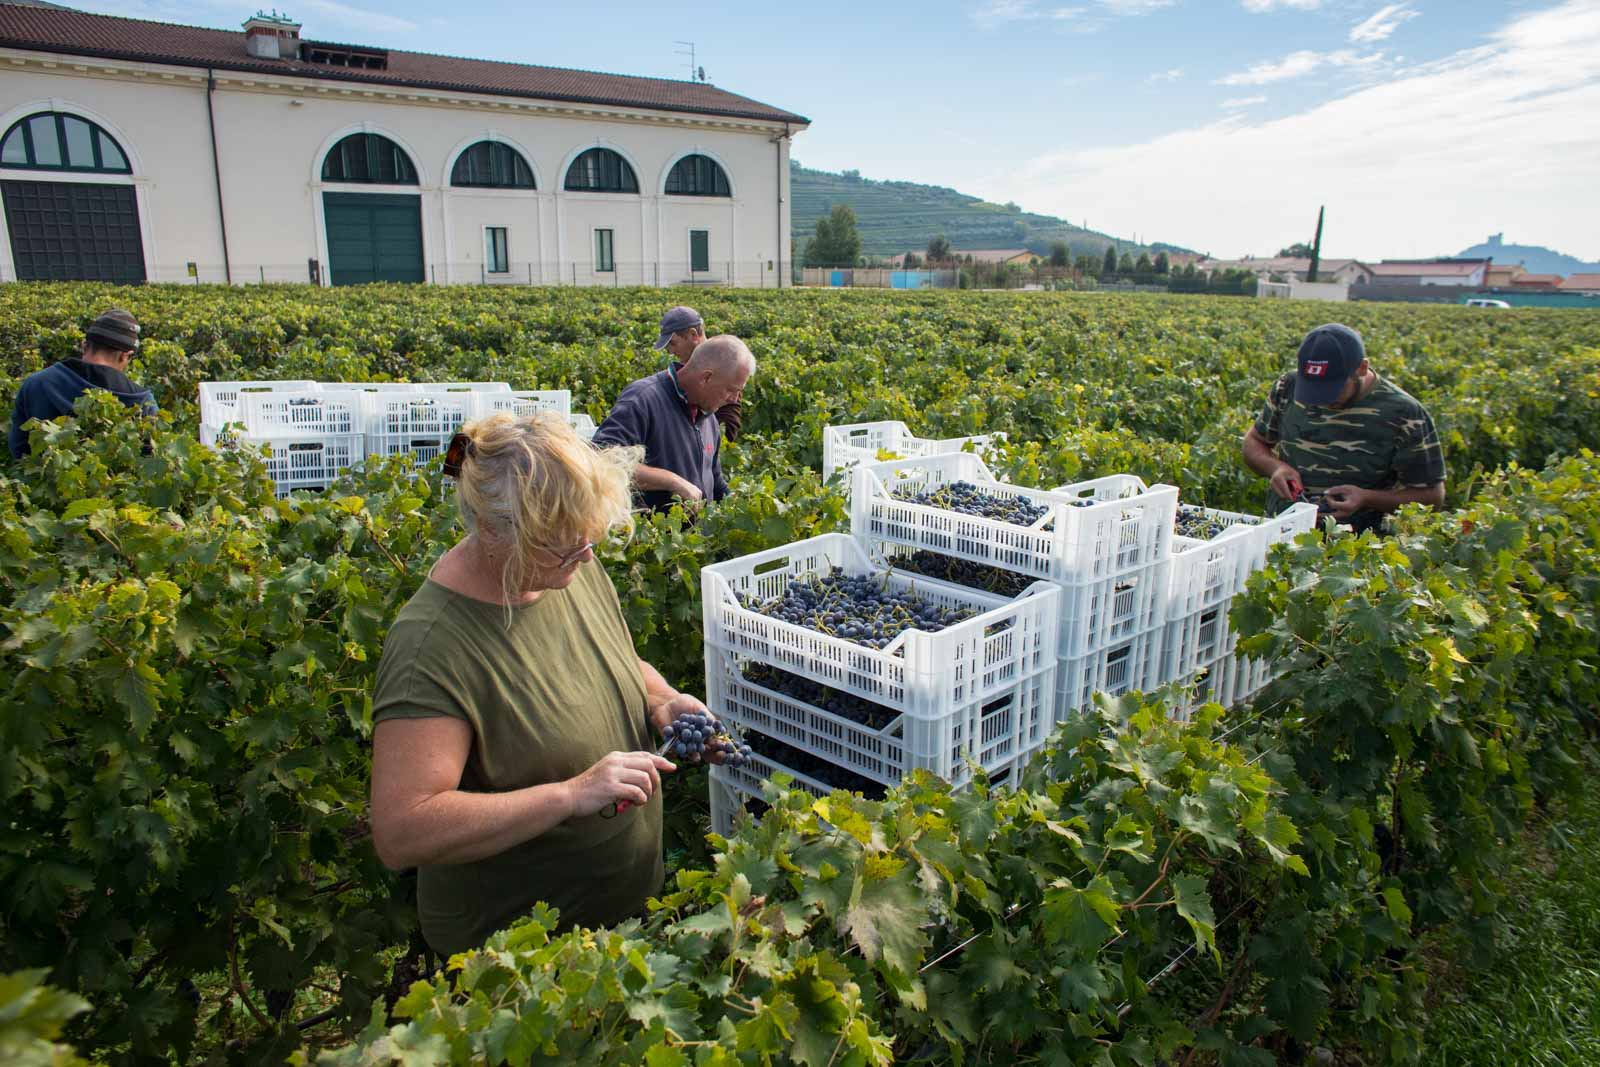 Harvesters work through the last of the year's vines. ©Kevin Day/Opening a Bottle